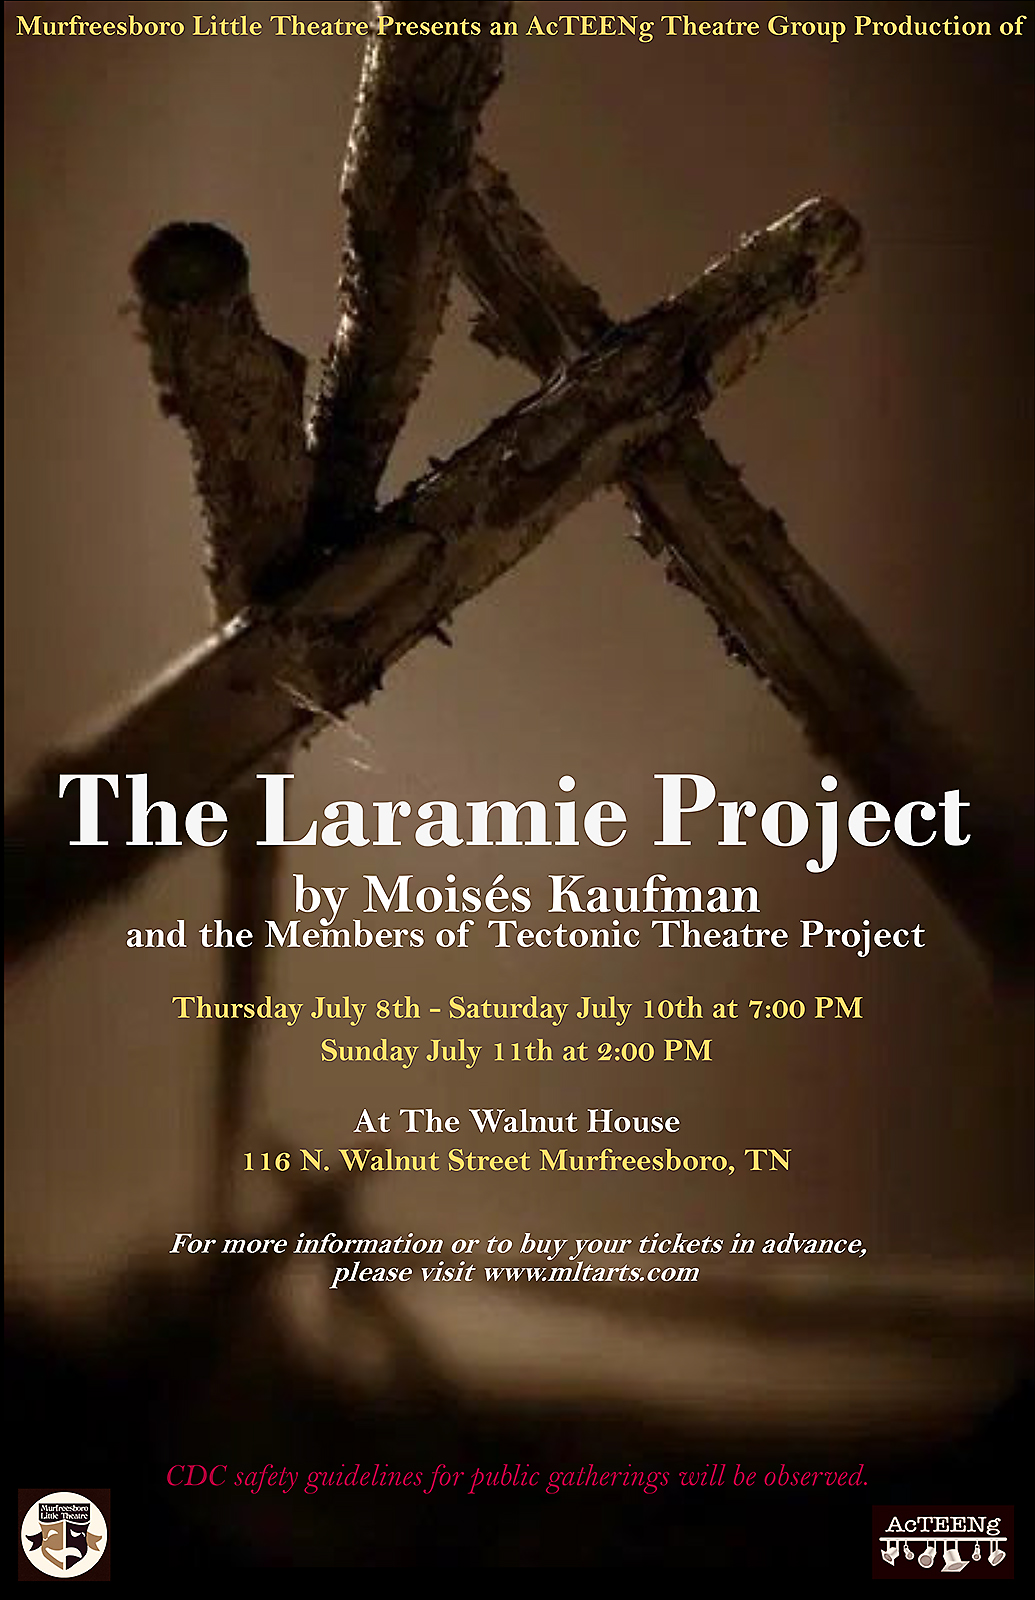 """Murfreesboro Little Theatre poster for July 2021 production of """"The Laramie Project"""""""